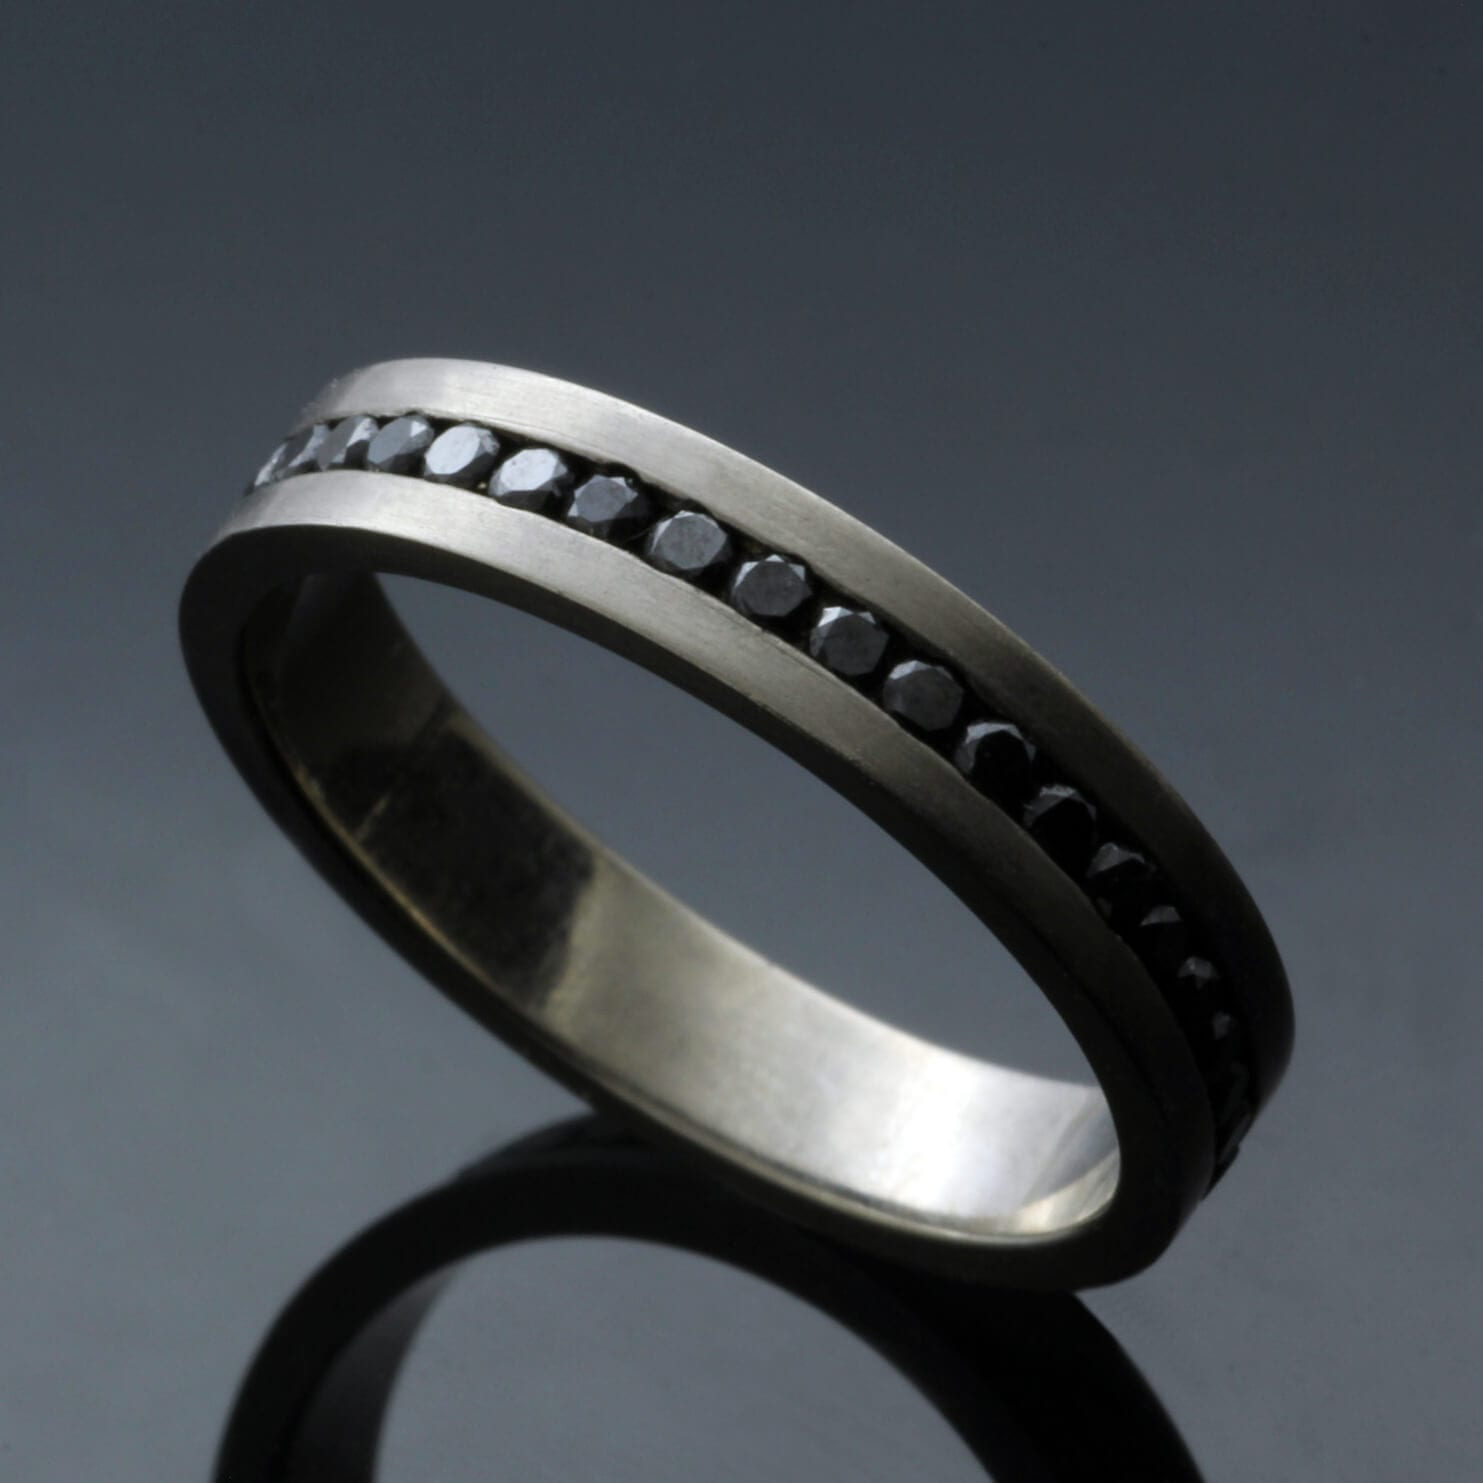 Contemporary Full Eternity band solid 18ct White Gold channel set Black Diamonds